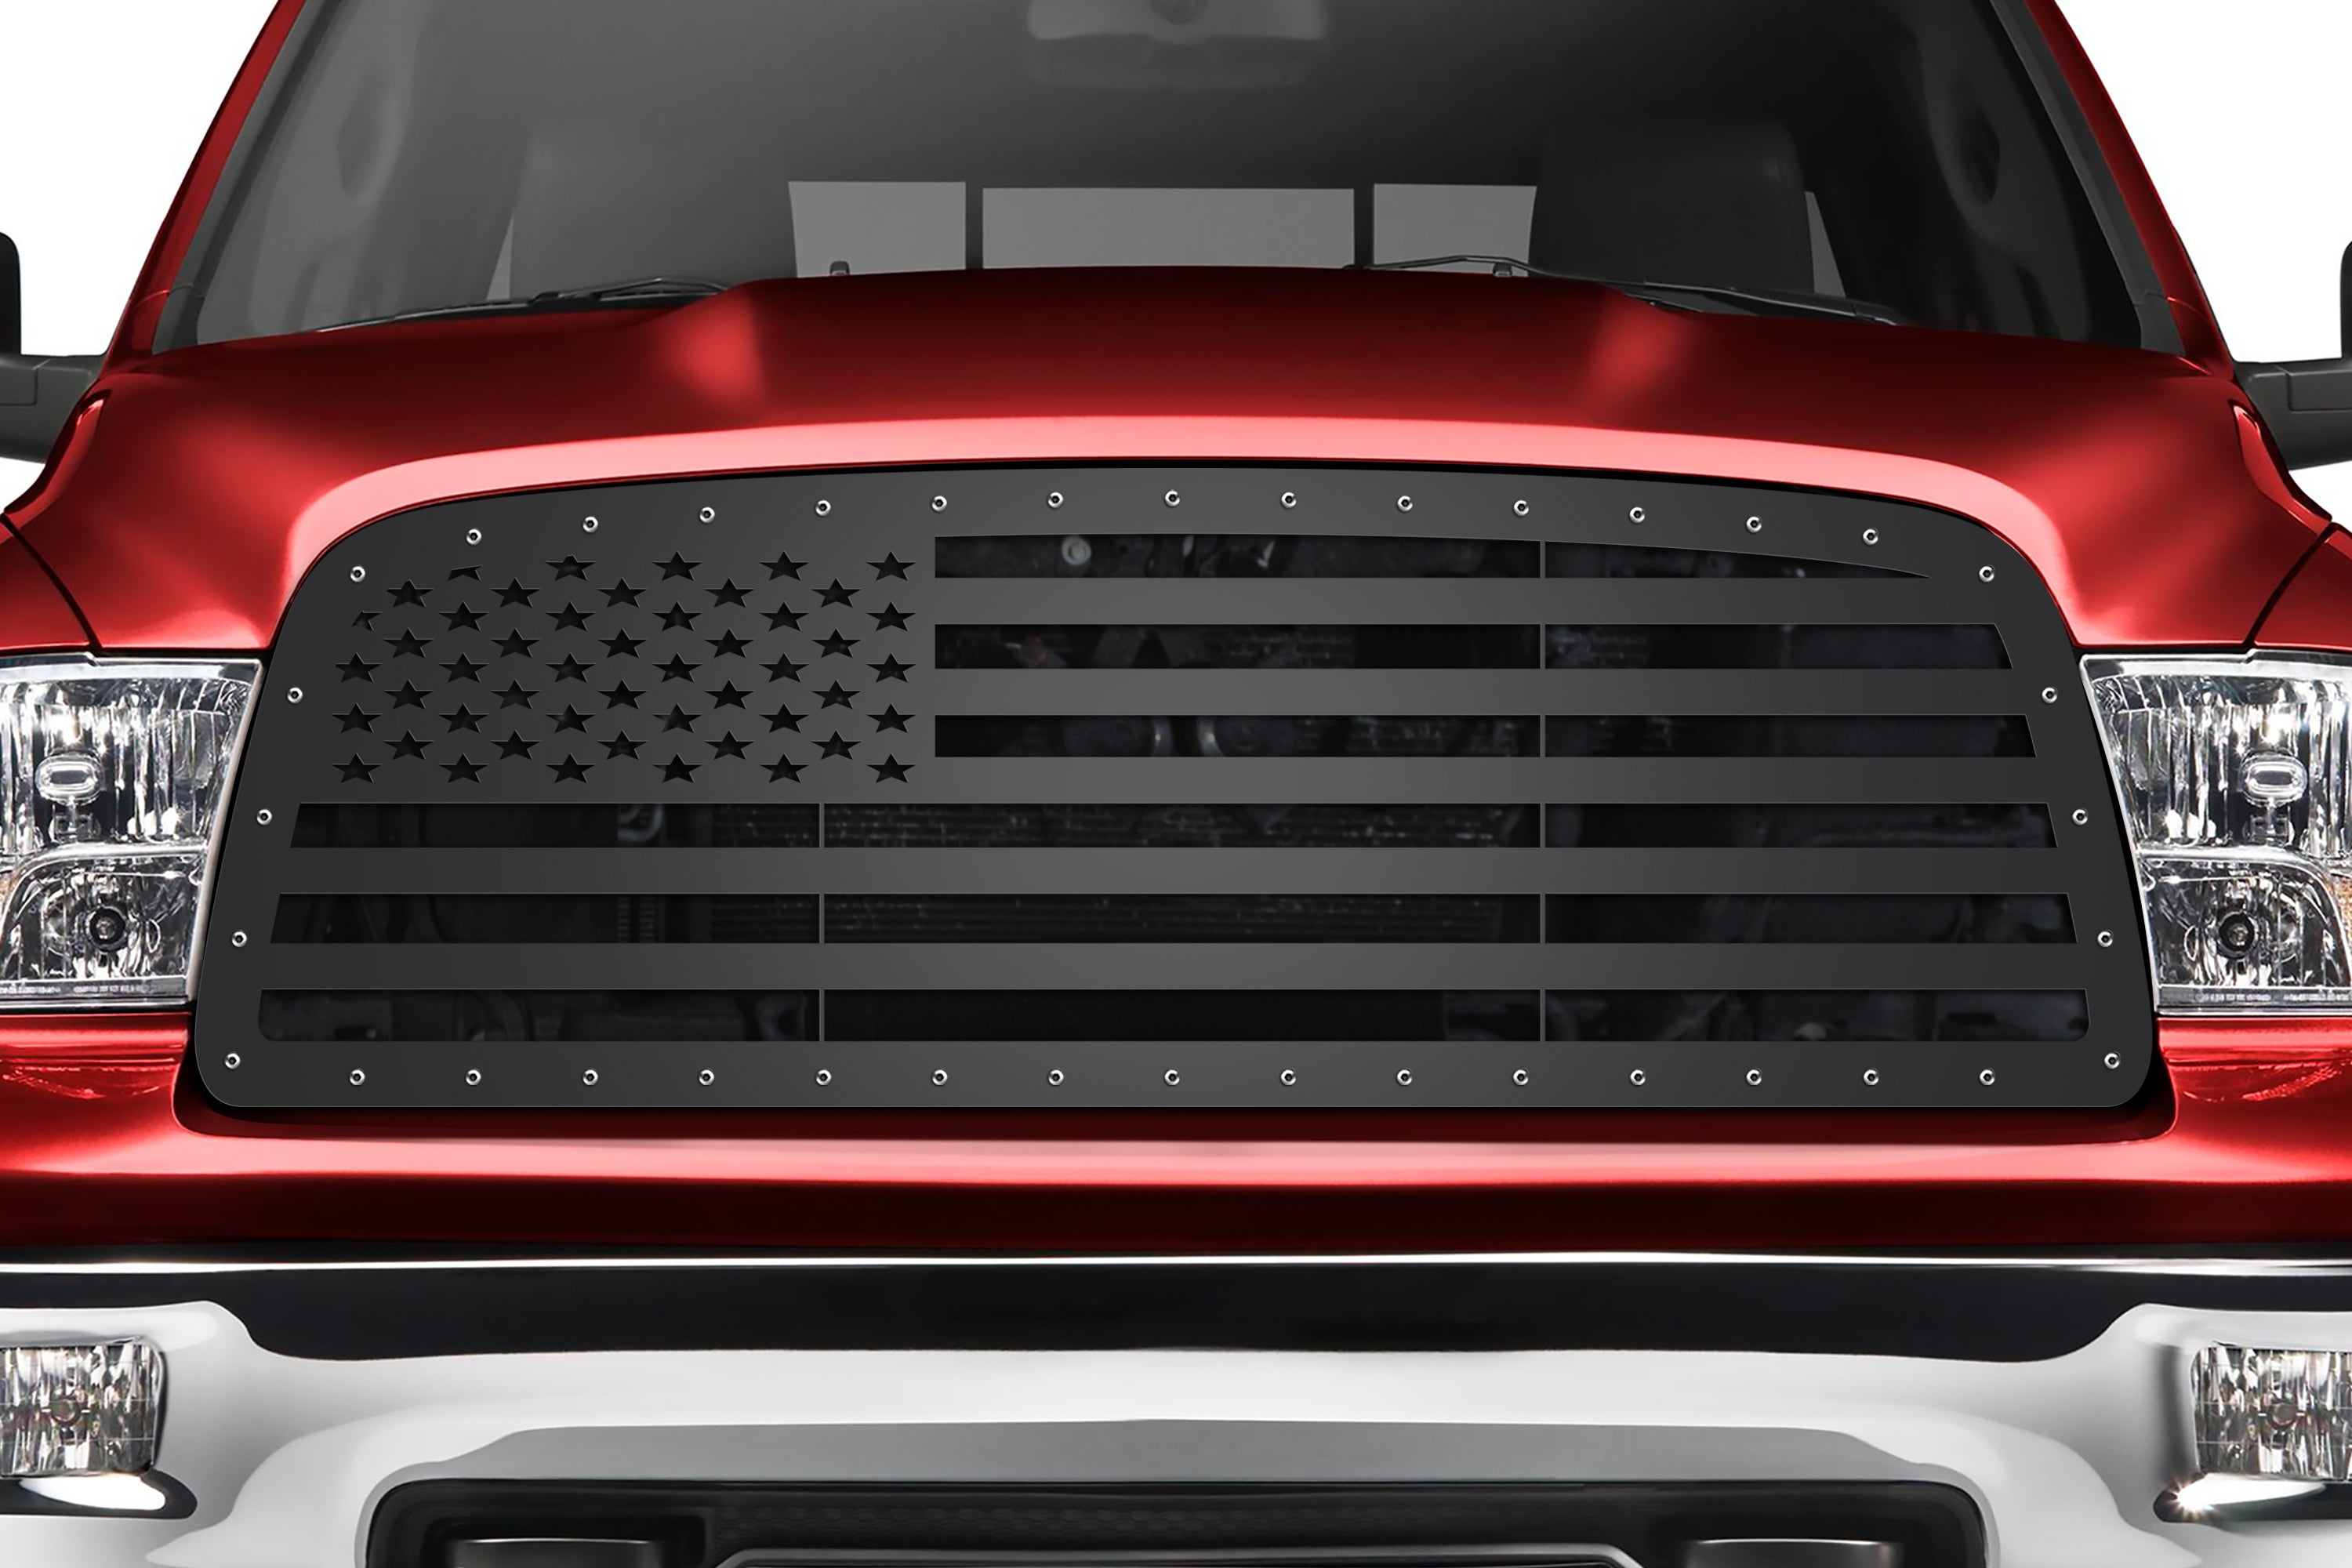 Steel Grille for Dodge Ram 1500 (2009-2012) and Ram 2500/3500 (2013-2018) - AMERICAN FLAG (Straight Across)